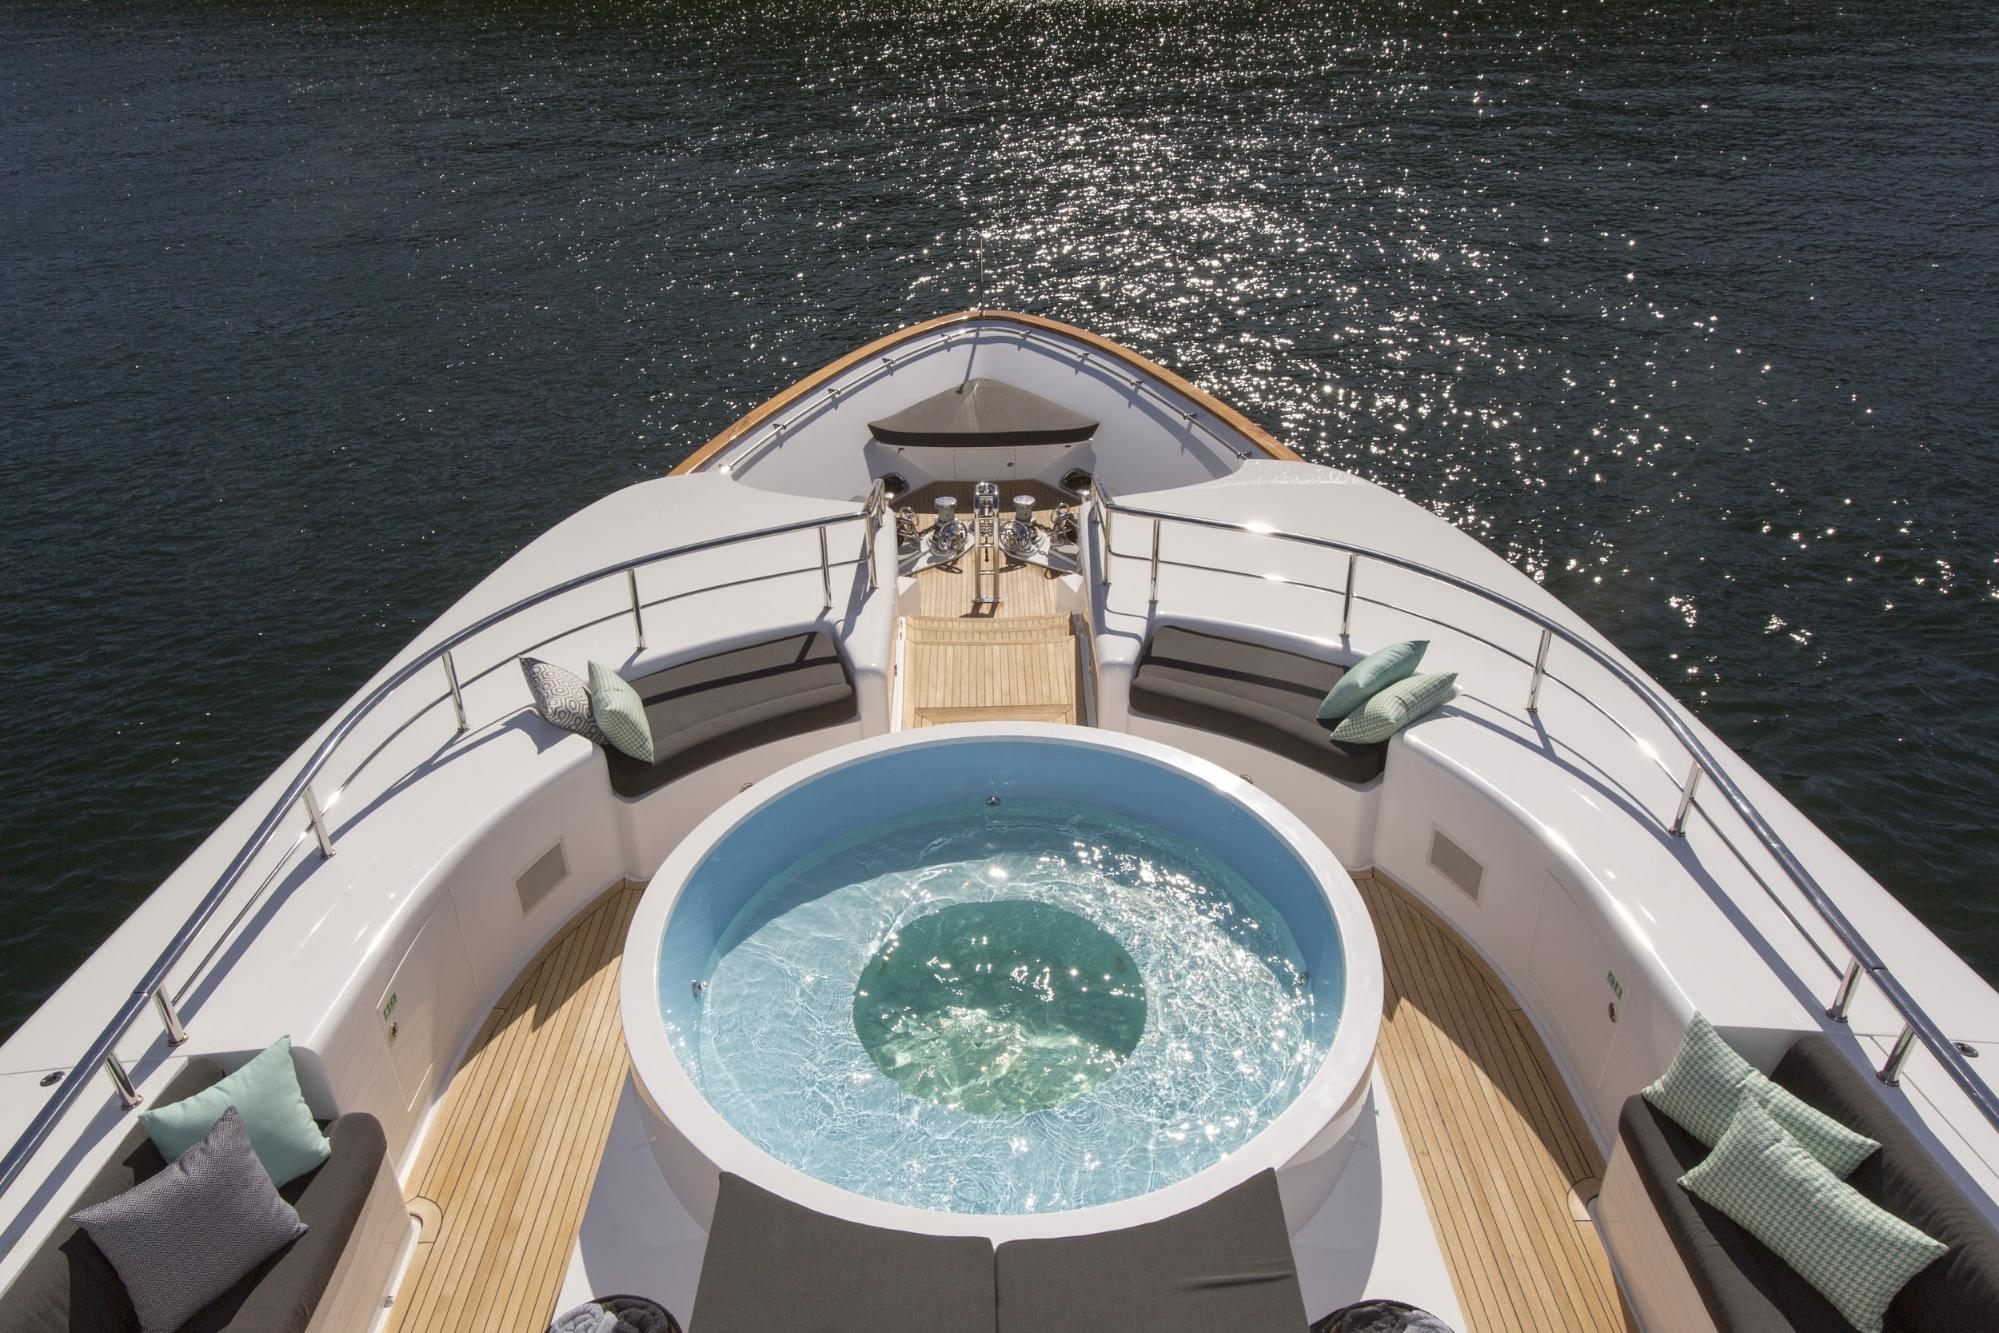 Watch race day preparations from the hot tub on the deck of a superyacht.